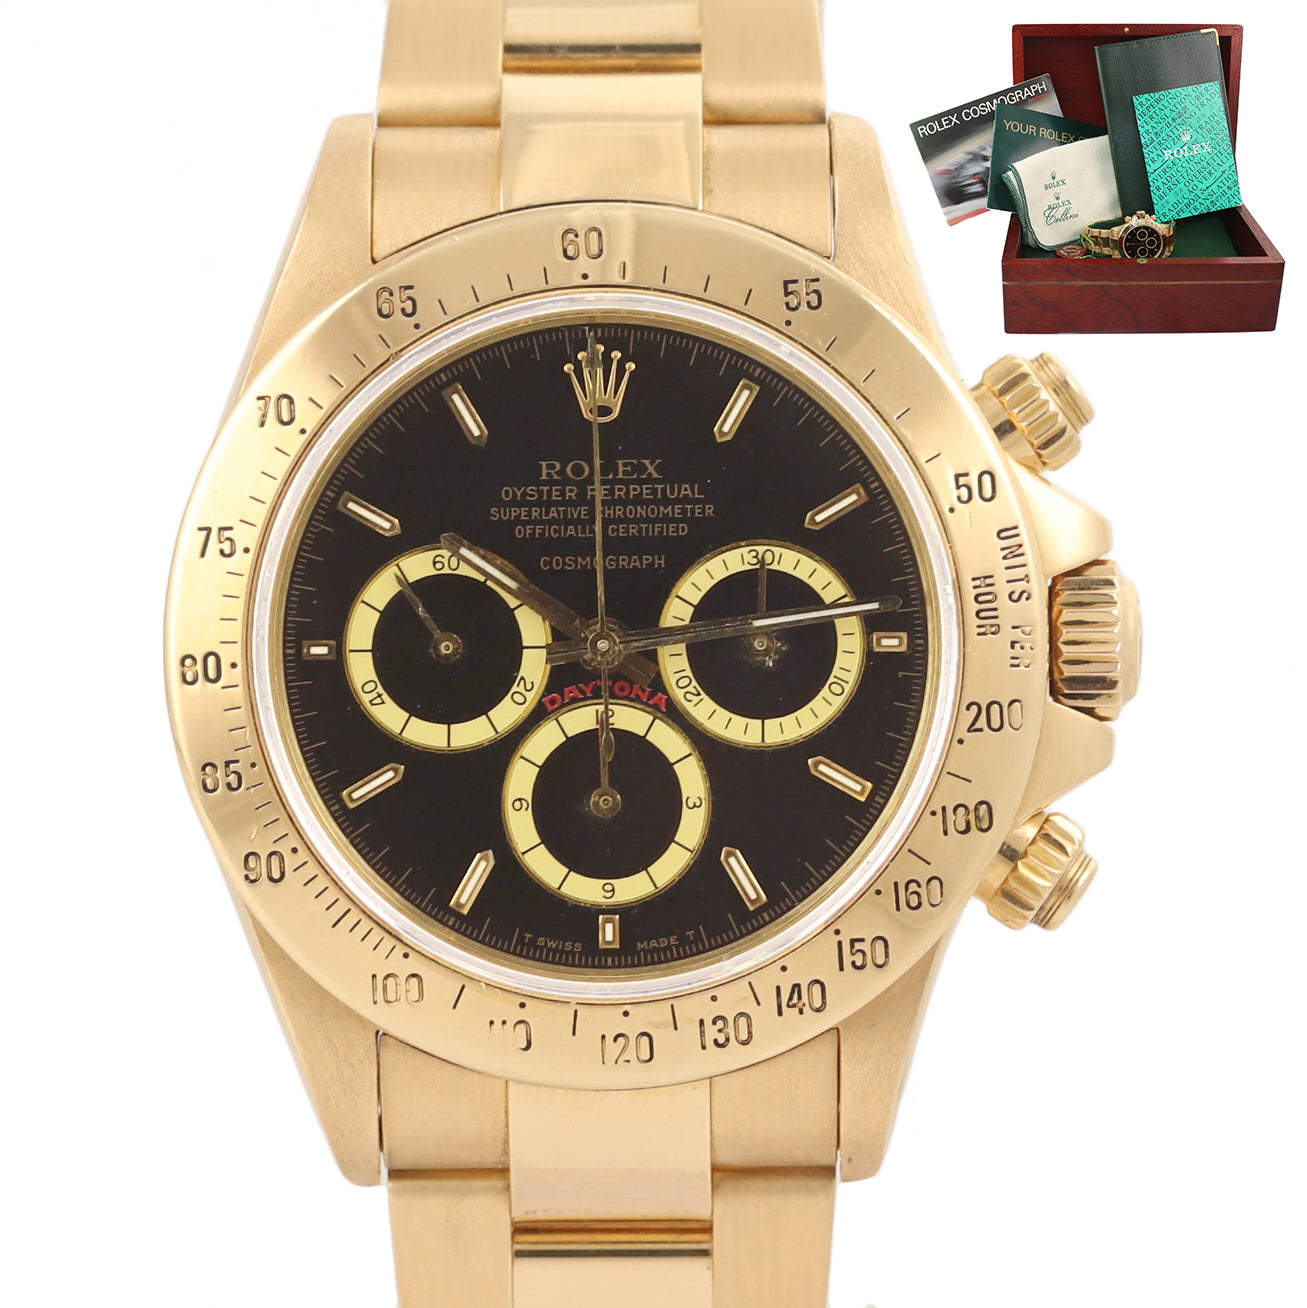 Rolex Daytona 16528 Zenith R Black Floating Cosmograph Inverted 6 Gold Watch